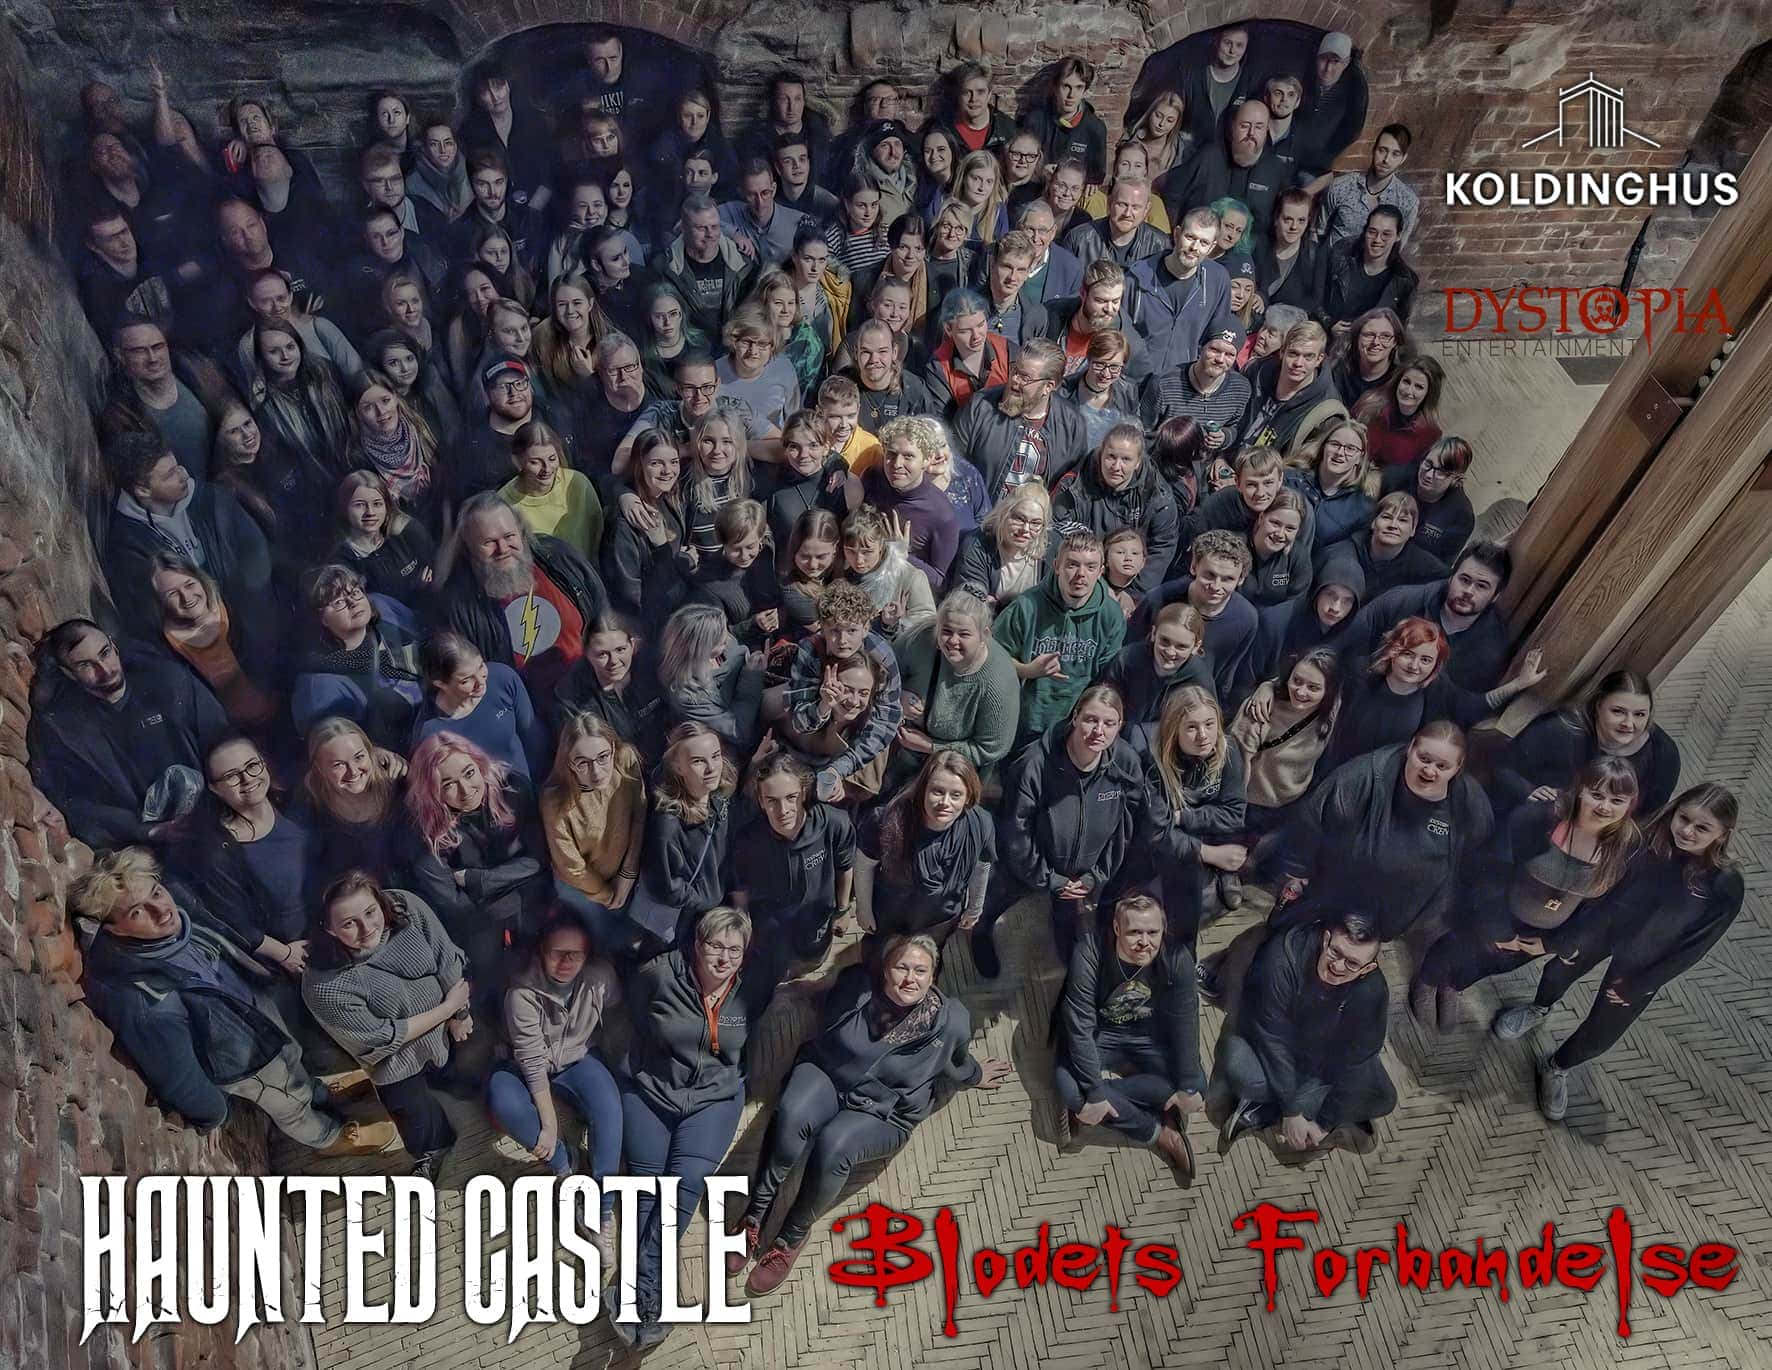 Haunted Castle 2020 The Curse of the Blood volunteers